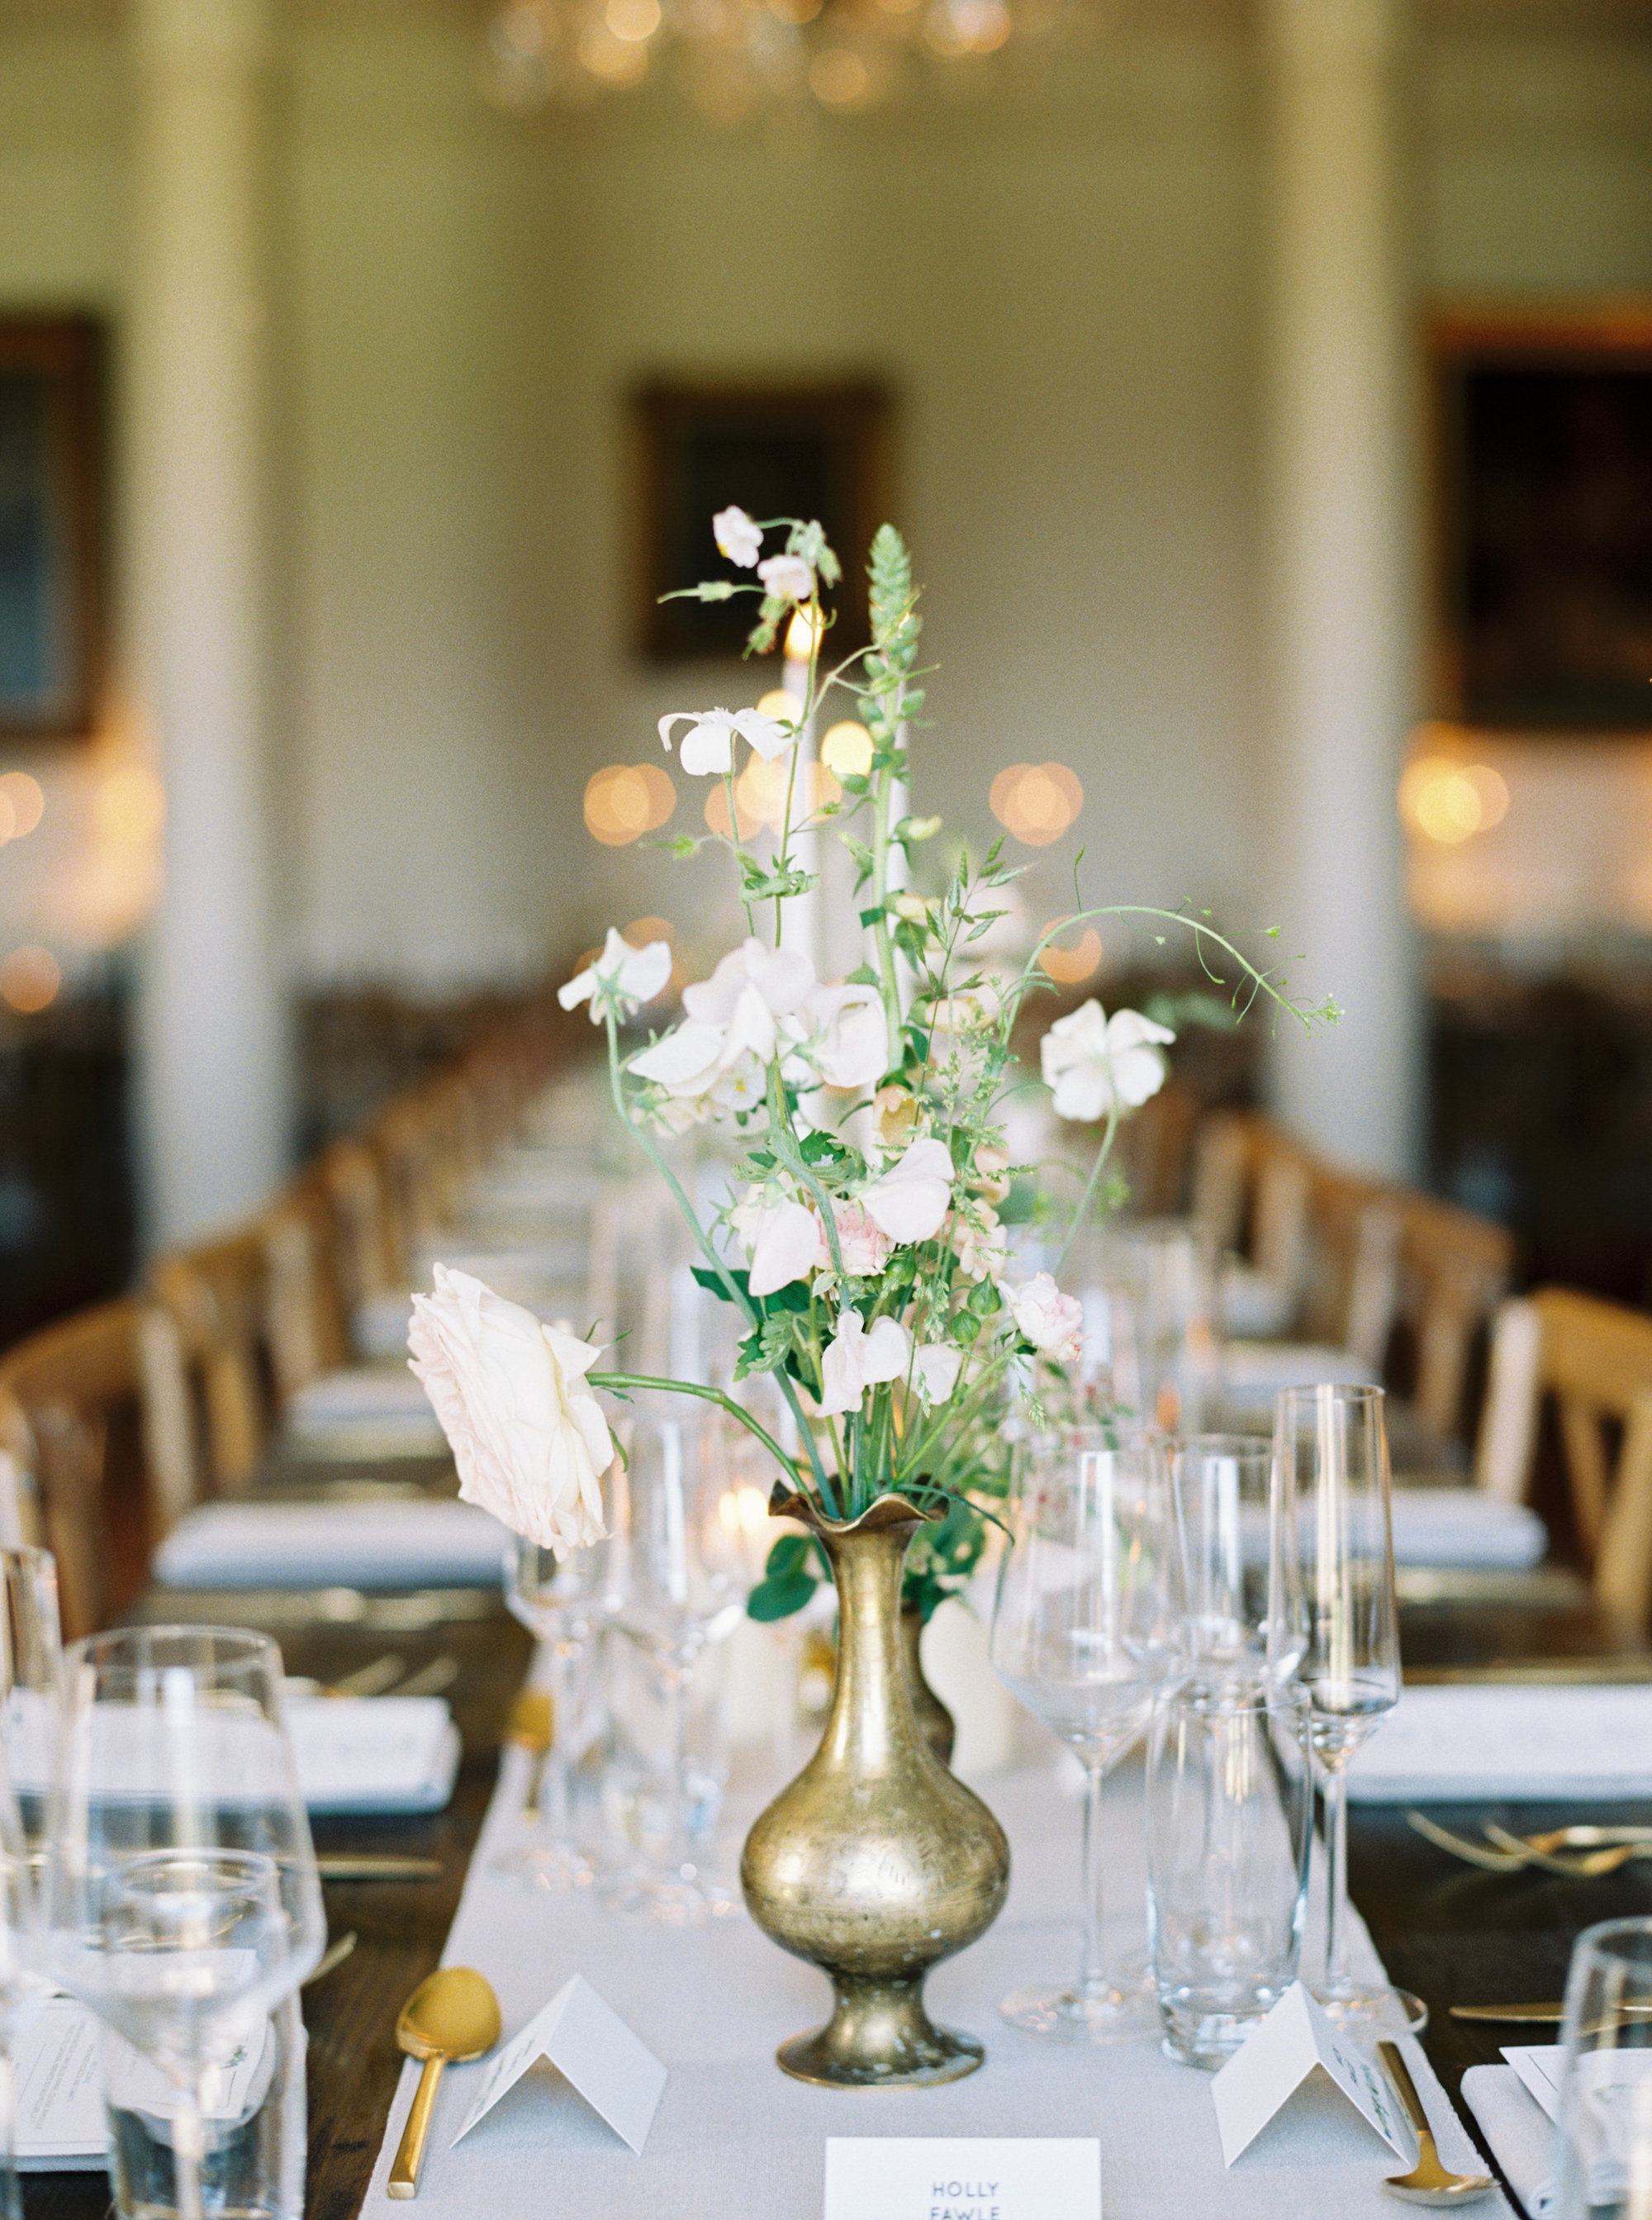 Luxury Wedding Planner UK | Jennifer & Timothy's English Country Manor Wedding | Soft Pink Pale Blue White and Silver Toned Green Neutral Tones American Bride North Cadbury Court | Nicole Colwell Photography 1201.jpg